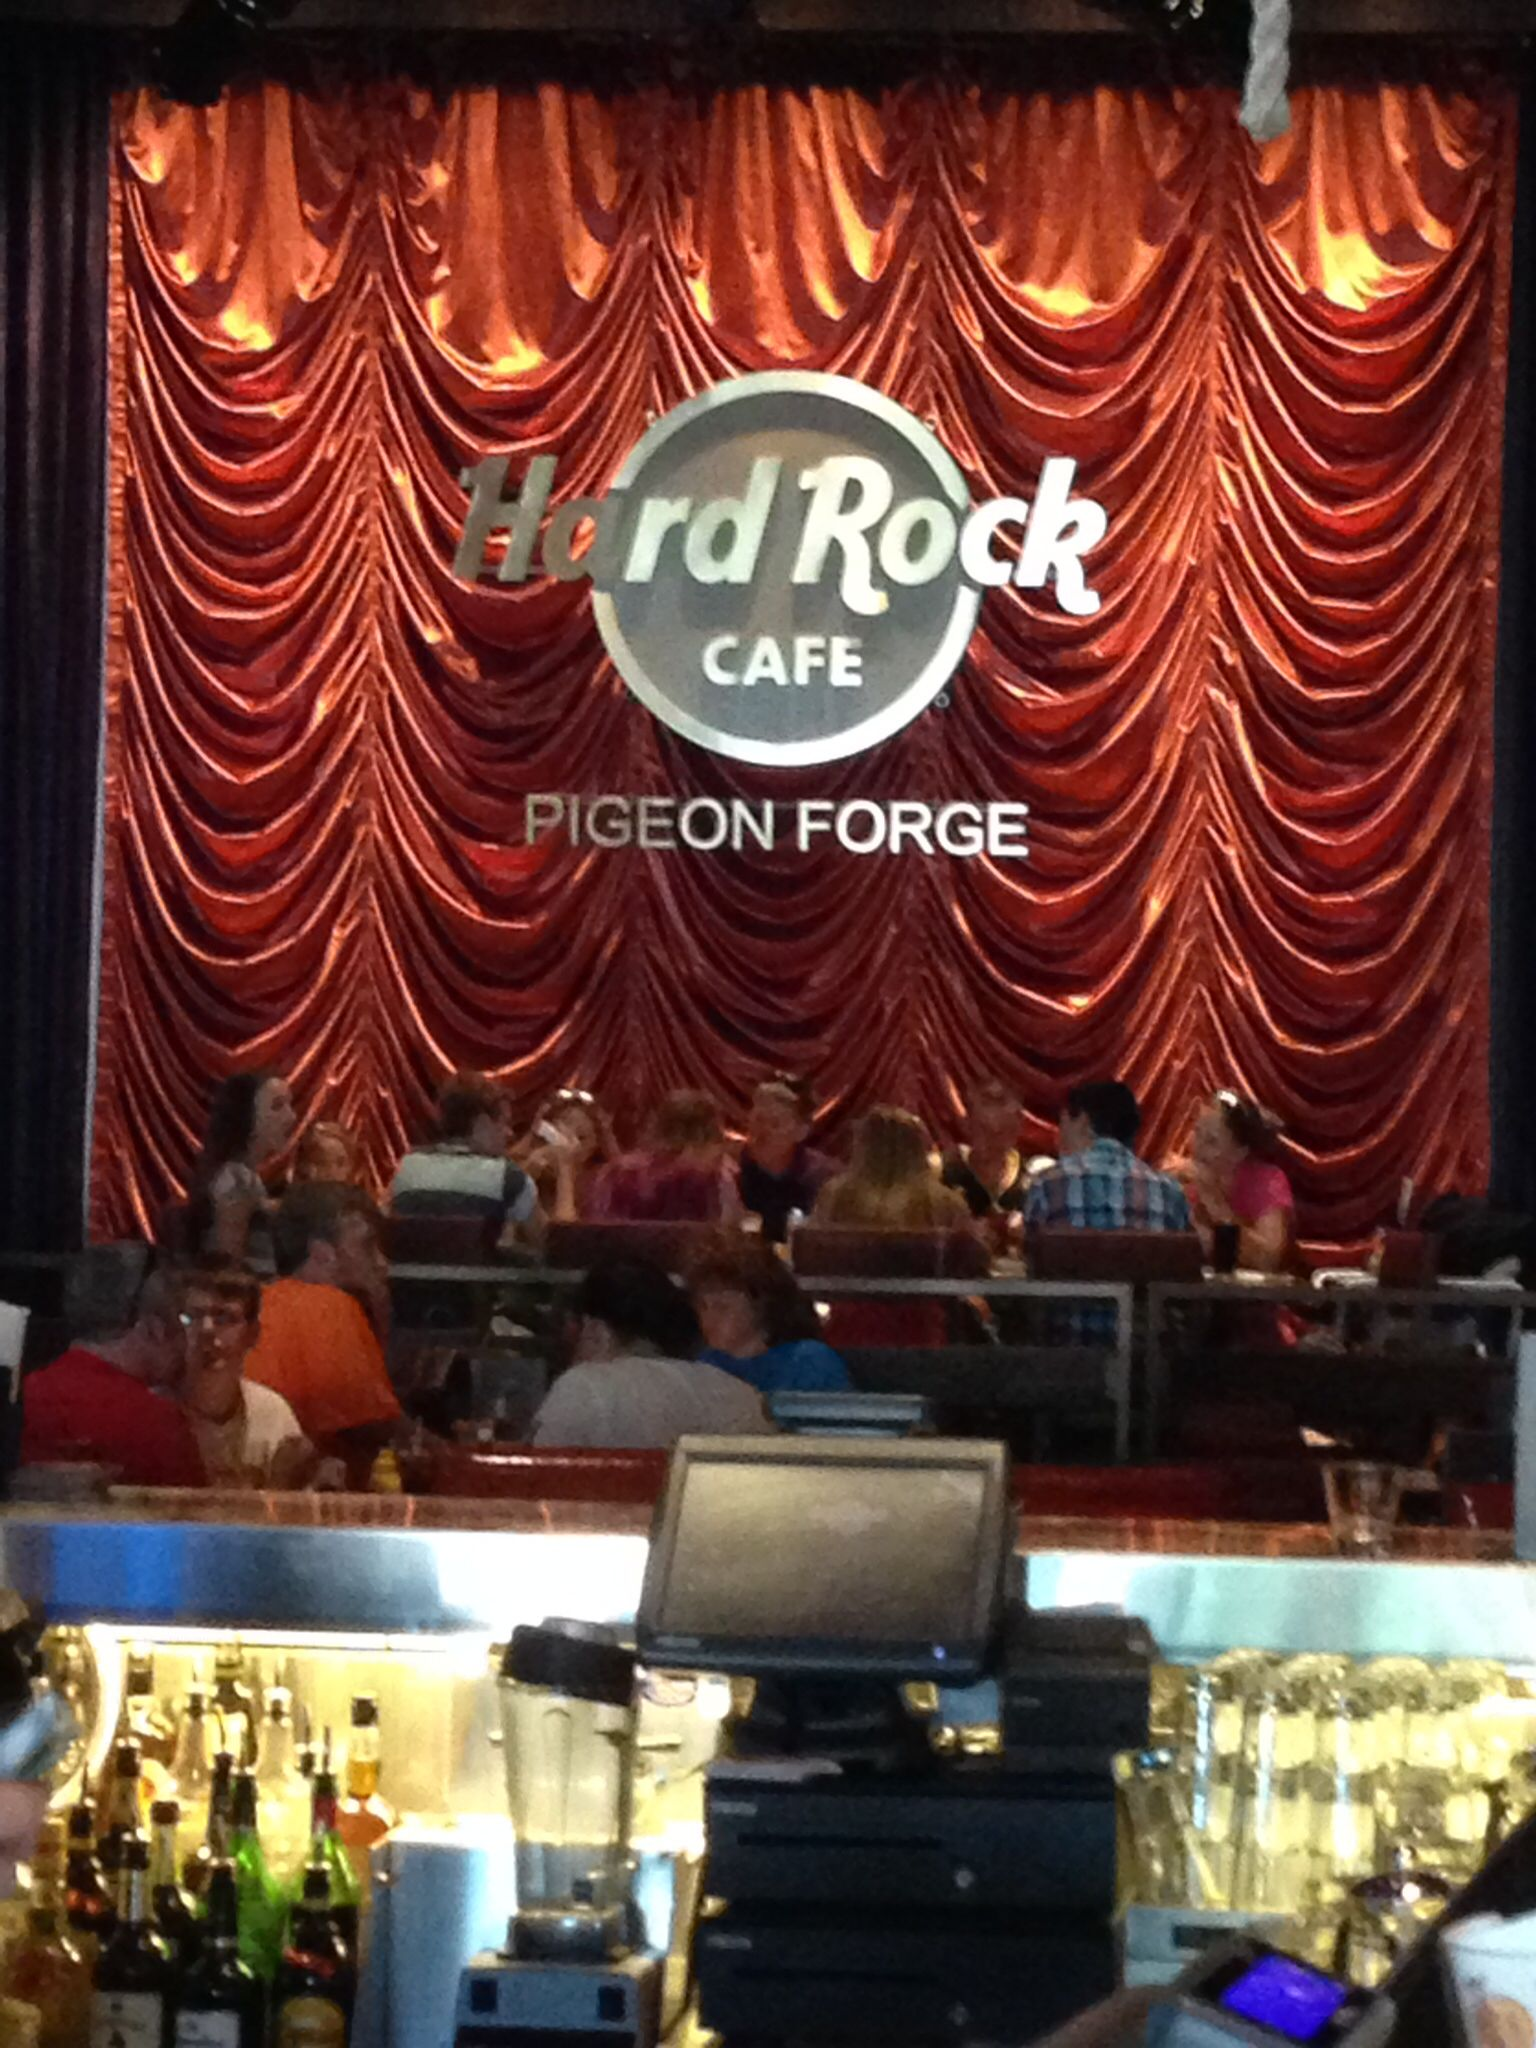 Hard Rock Cafe, Pigeon Forge, Tennessee | Places I Have Been | Pinterest